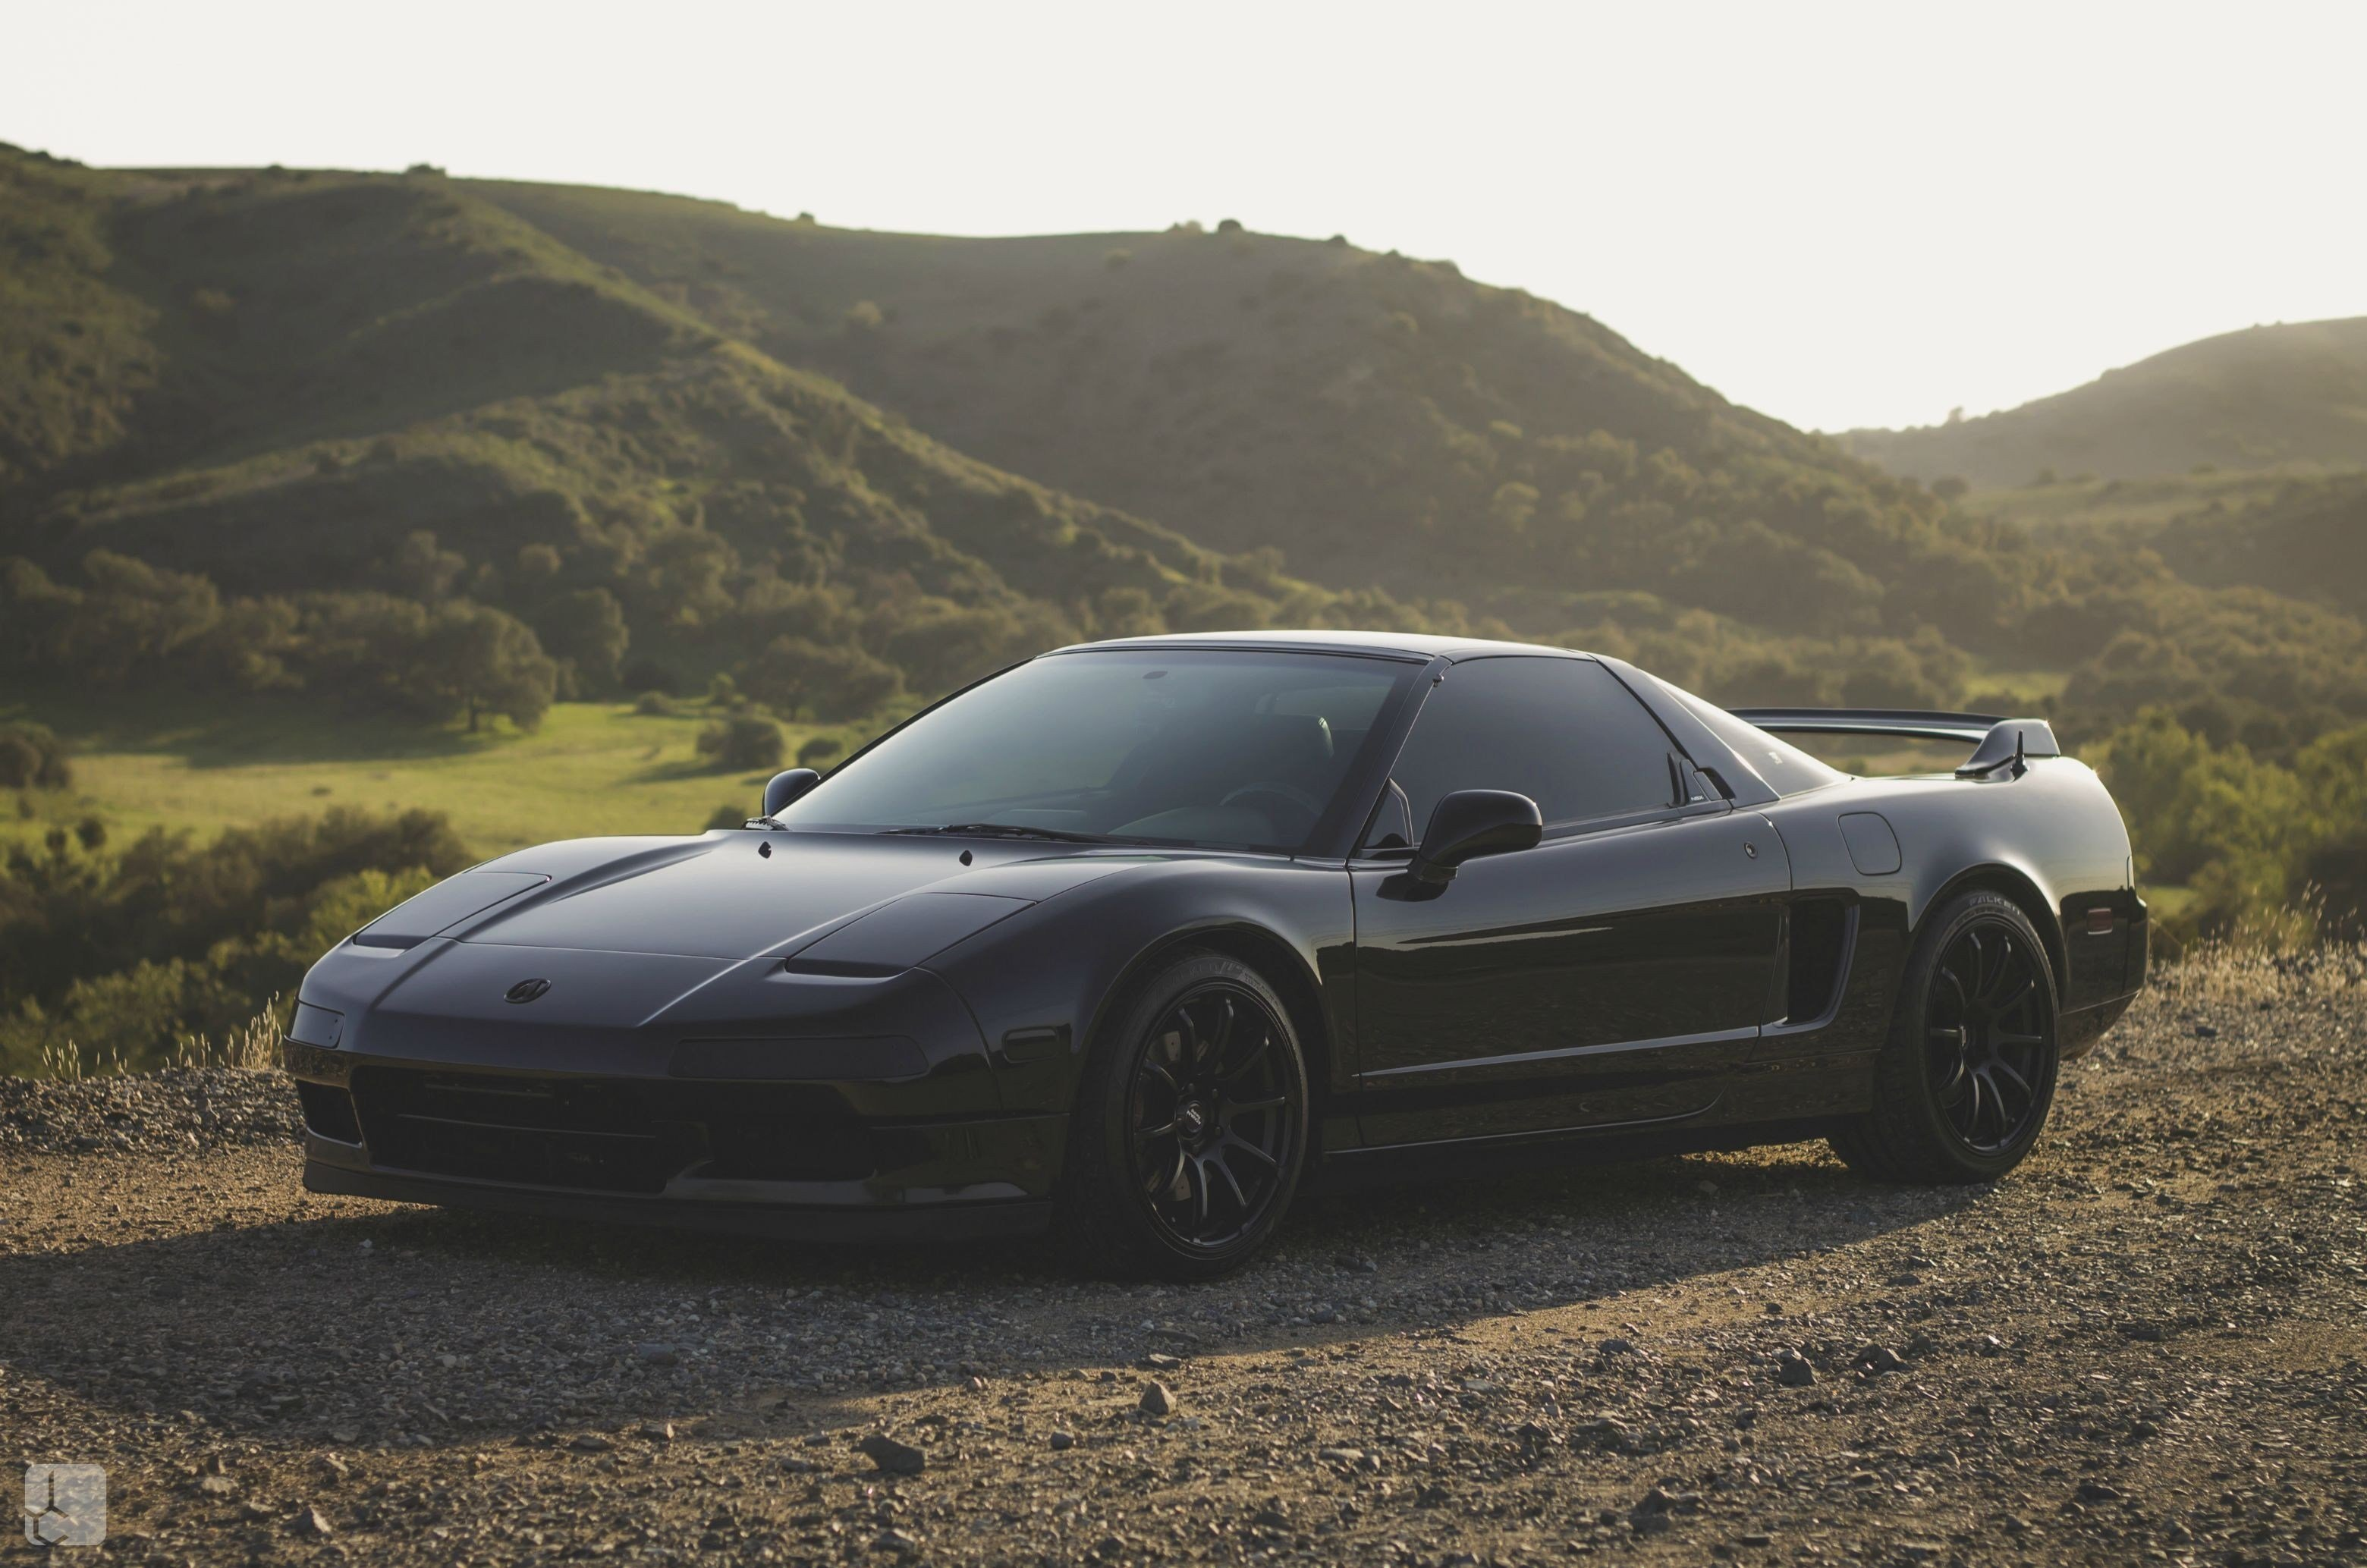 Latest Car Acura Acura Nsx Jdm Wallpapers Hd Desktop And Free Download